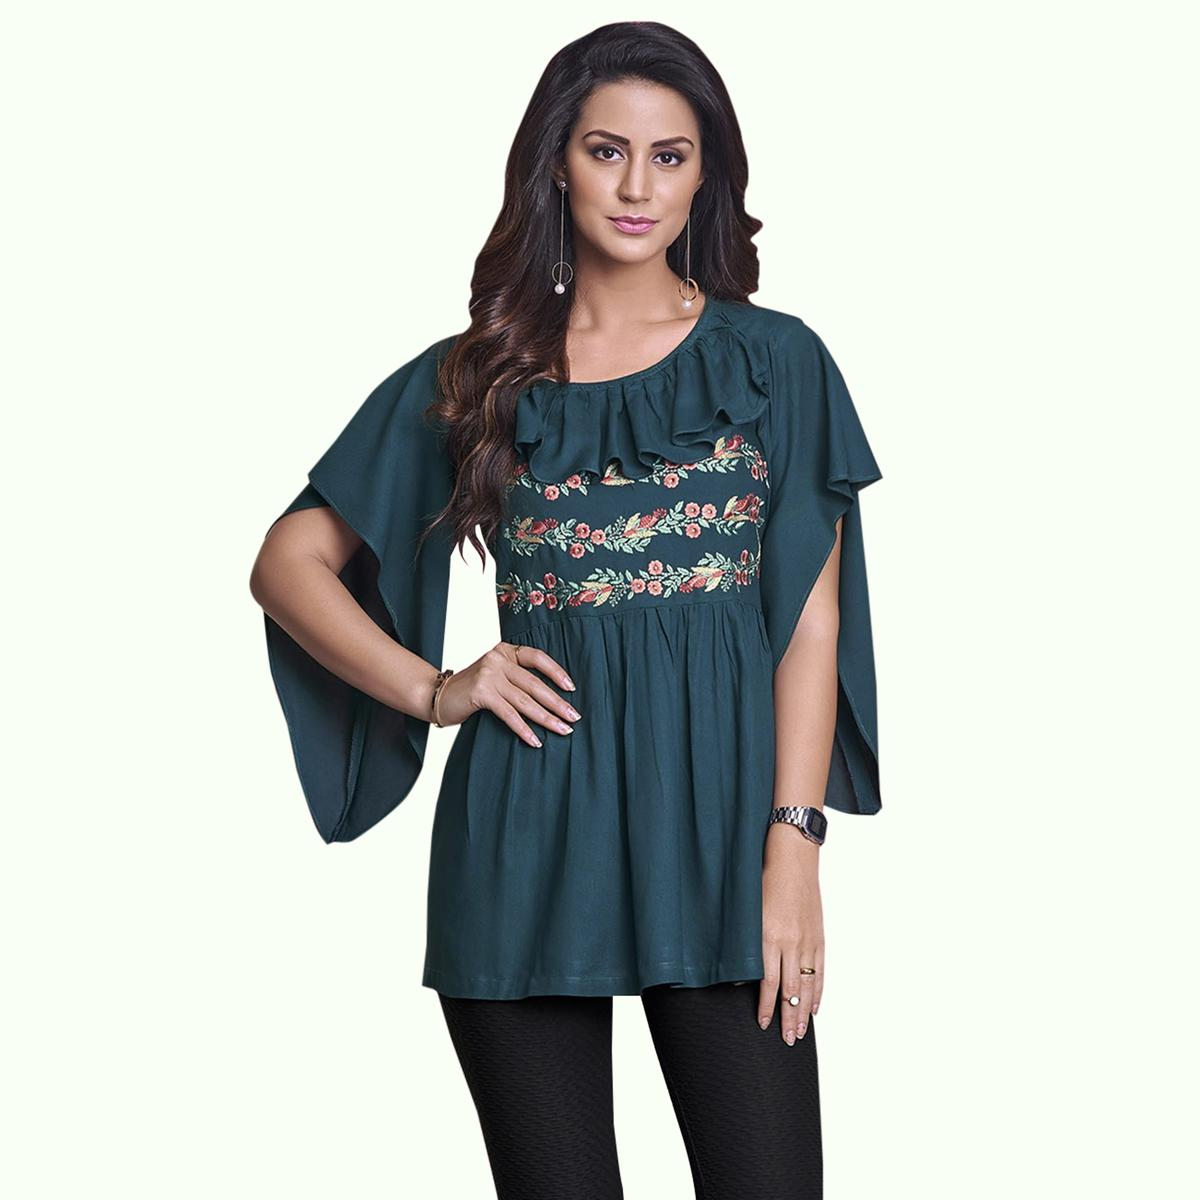 Pleasant Teal Green Colored Partywear Embroidered Rayon Western Top